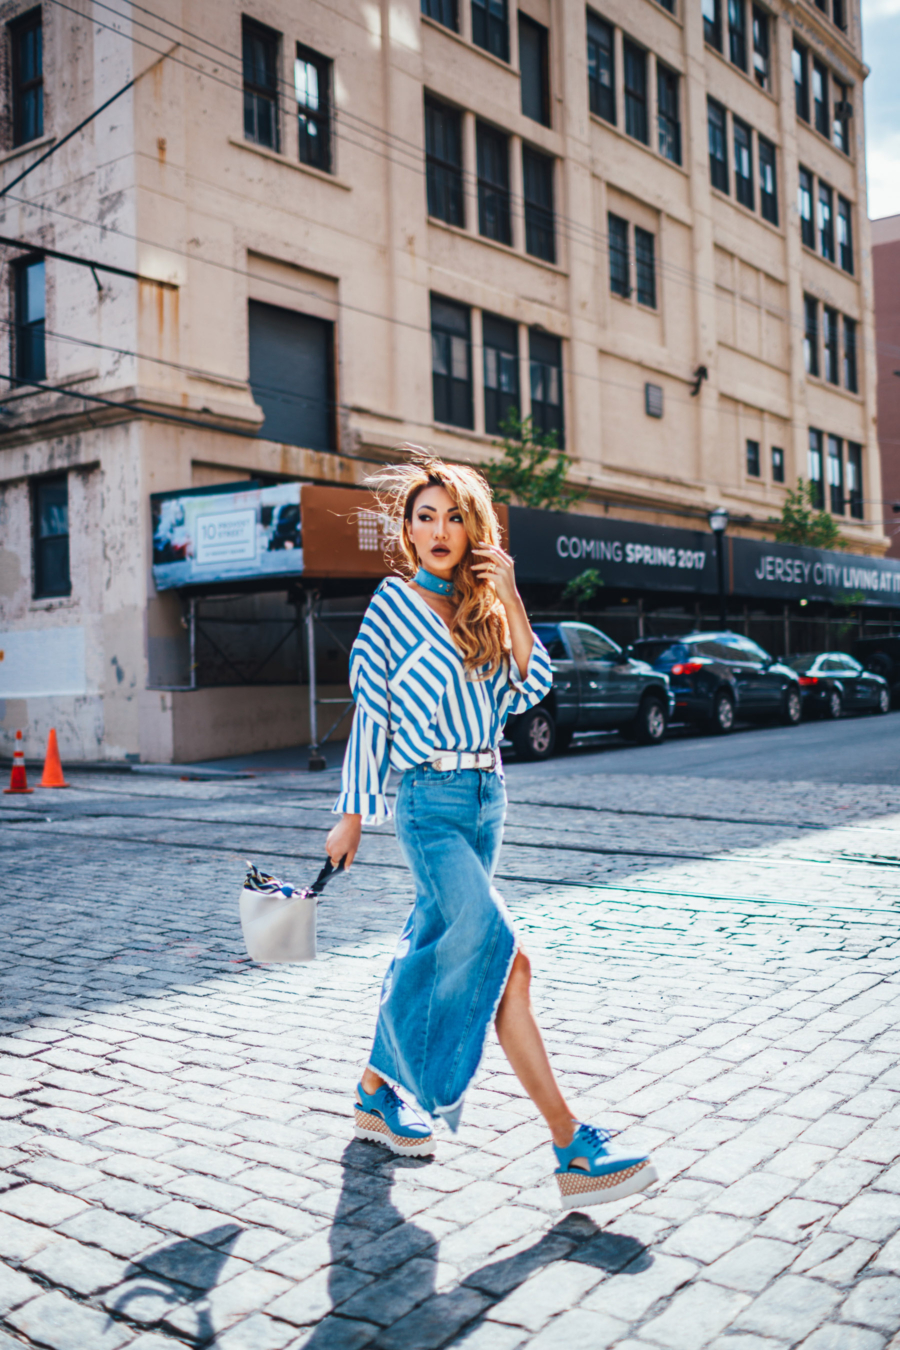 Blue Denim Skirt and Stripes Street Style - The Essential Guide to Pulling Off Summer Stripes // NotJessFashion.com